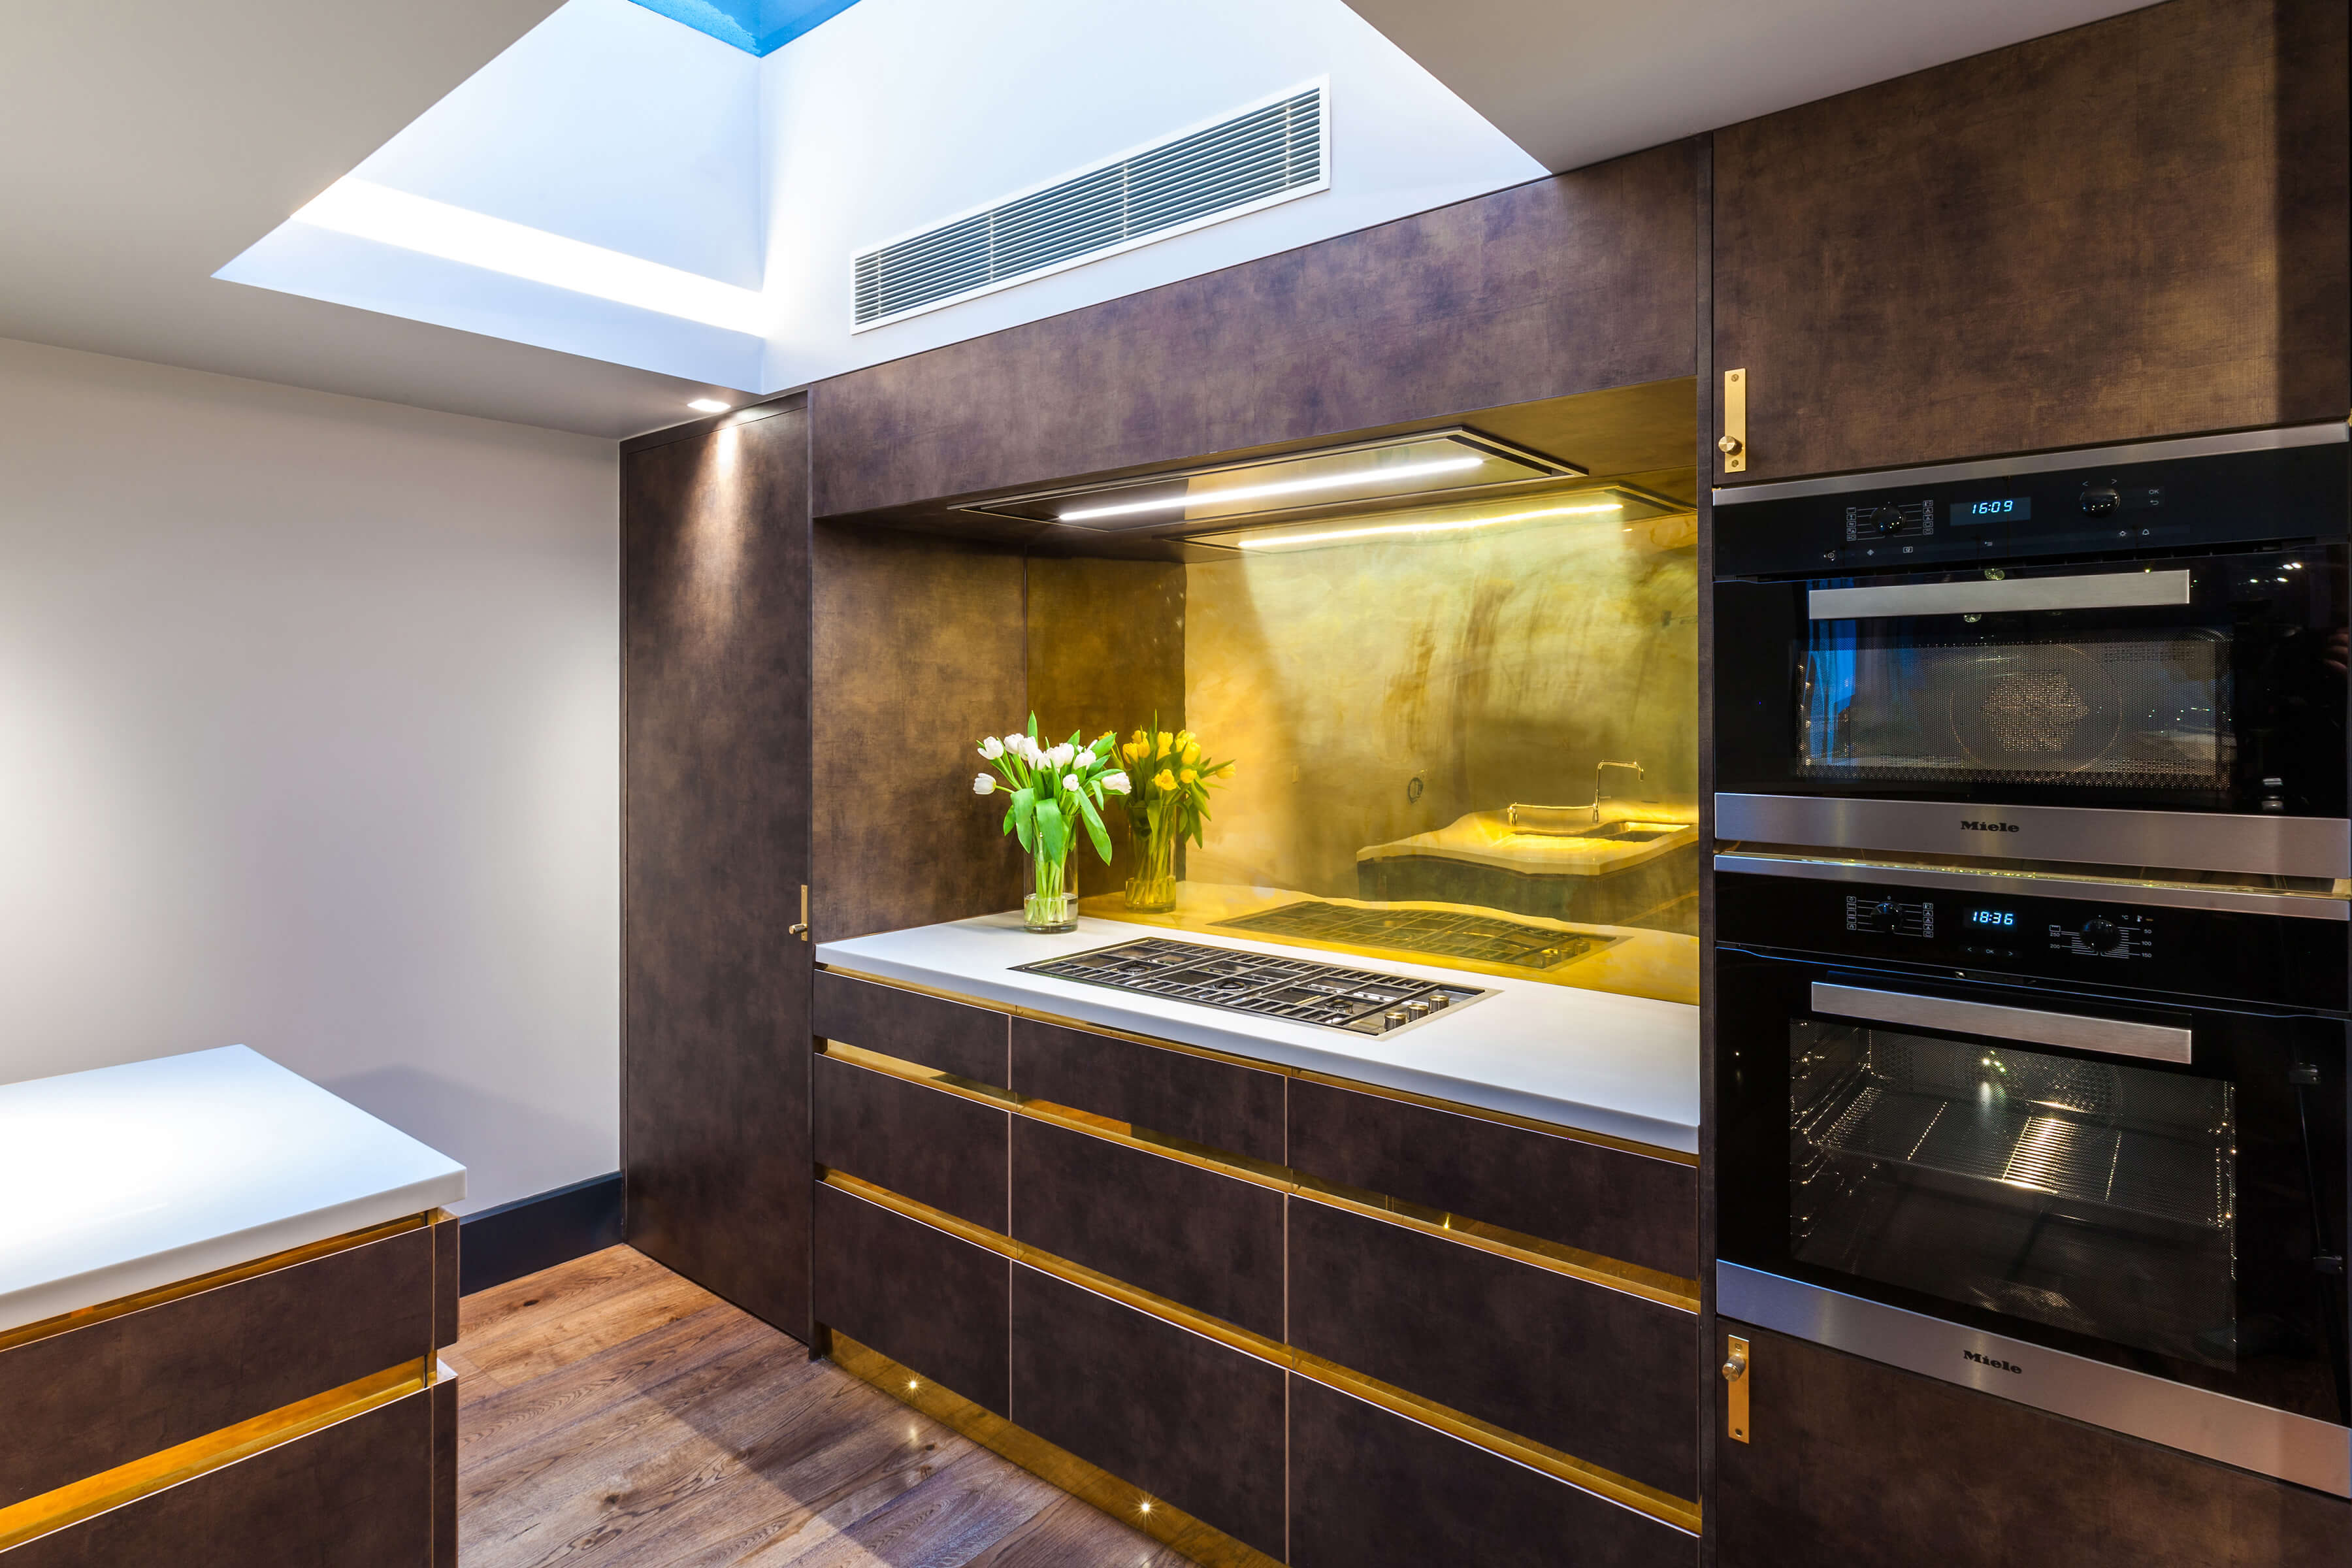 Skylight in luxurious kitchen with tactile cabinets